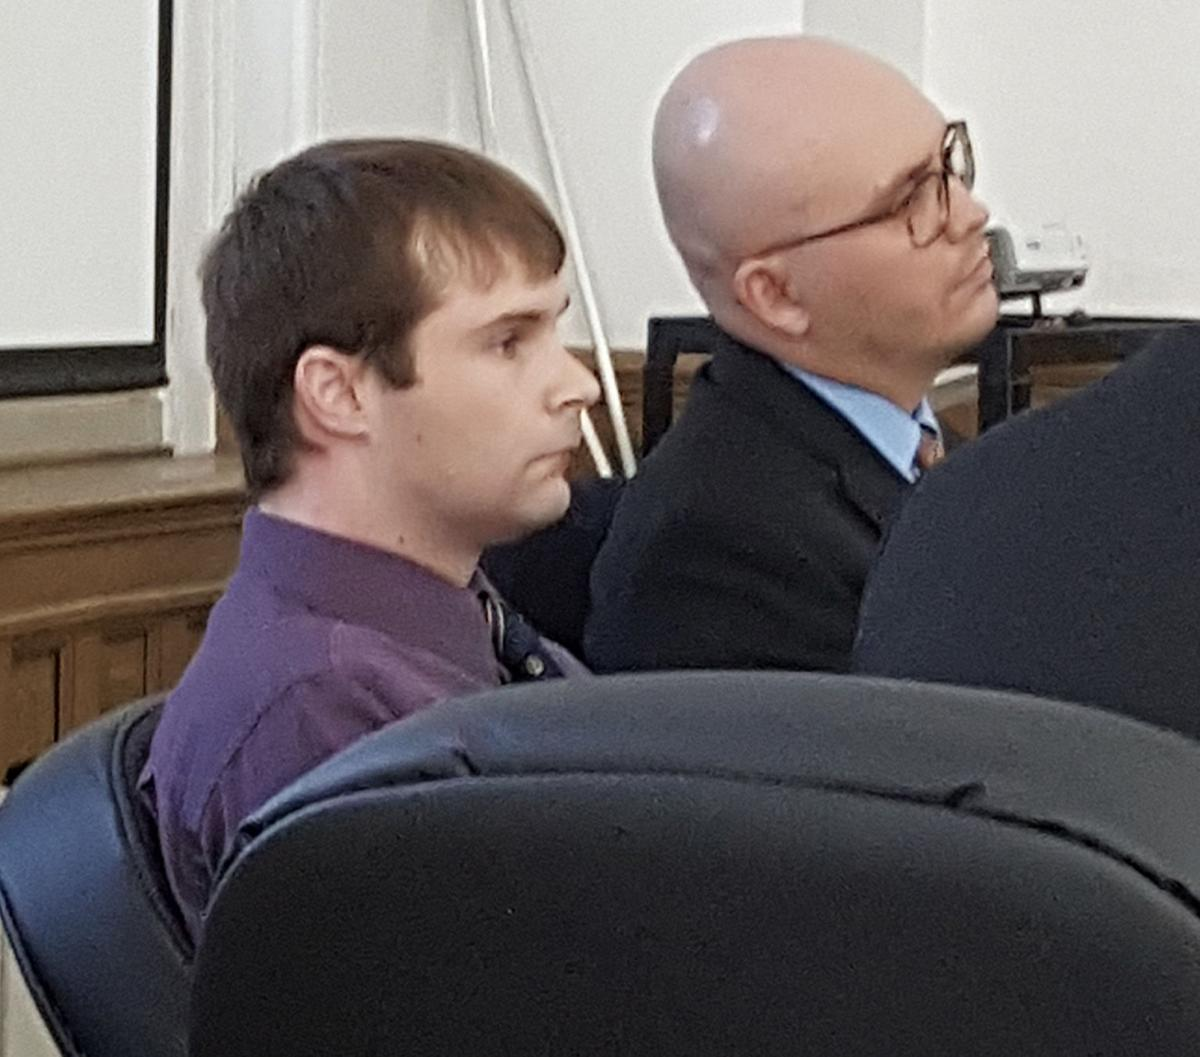 yenger guilty in double murder case news com christopher yenger listens to the jury confirm their vote one by one tuesday he has been found guilty of two first degree murder charges